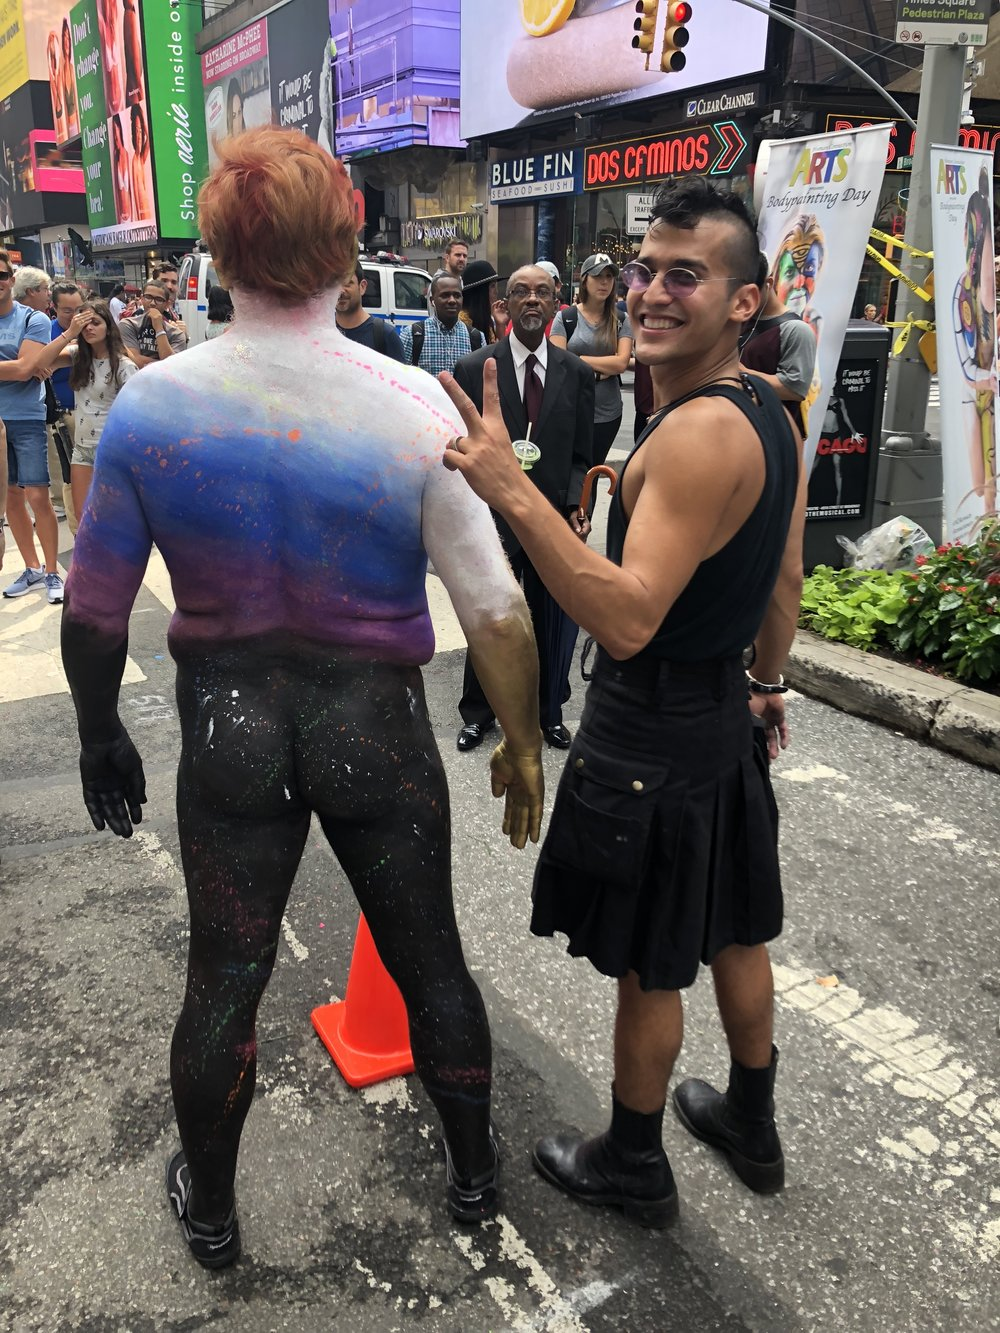 NYC makeup day, human connection arts, Micael Magalhaes.jpg